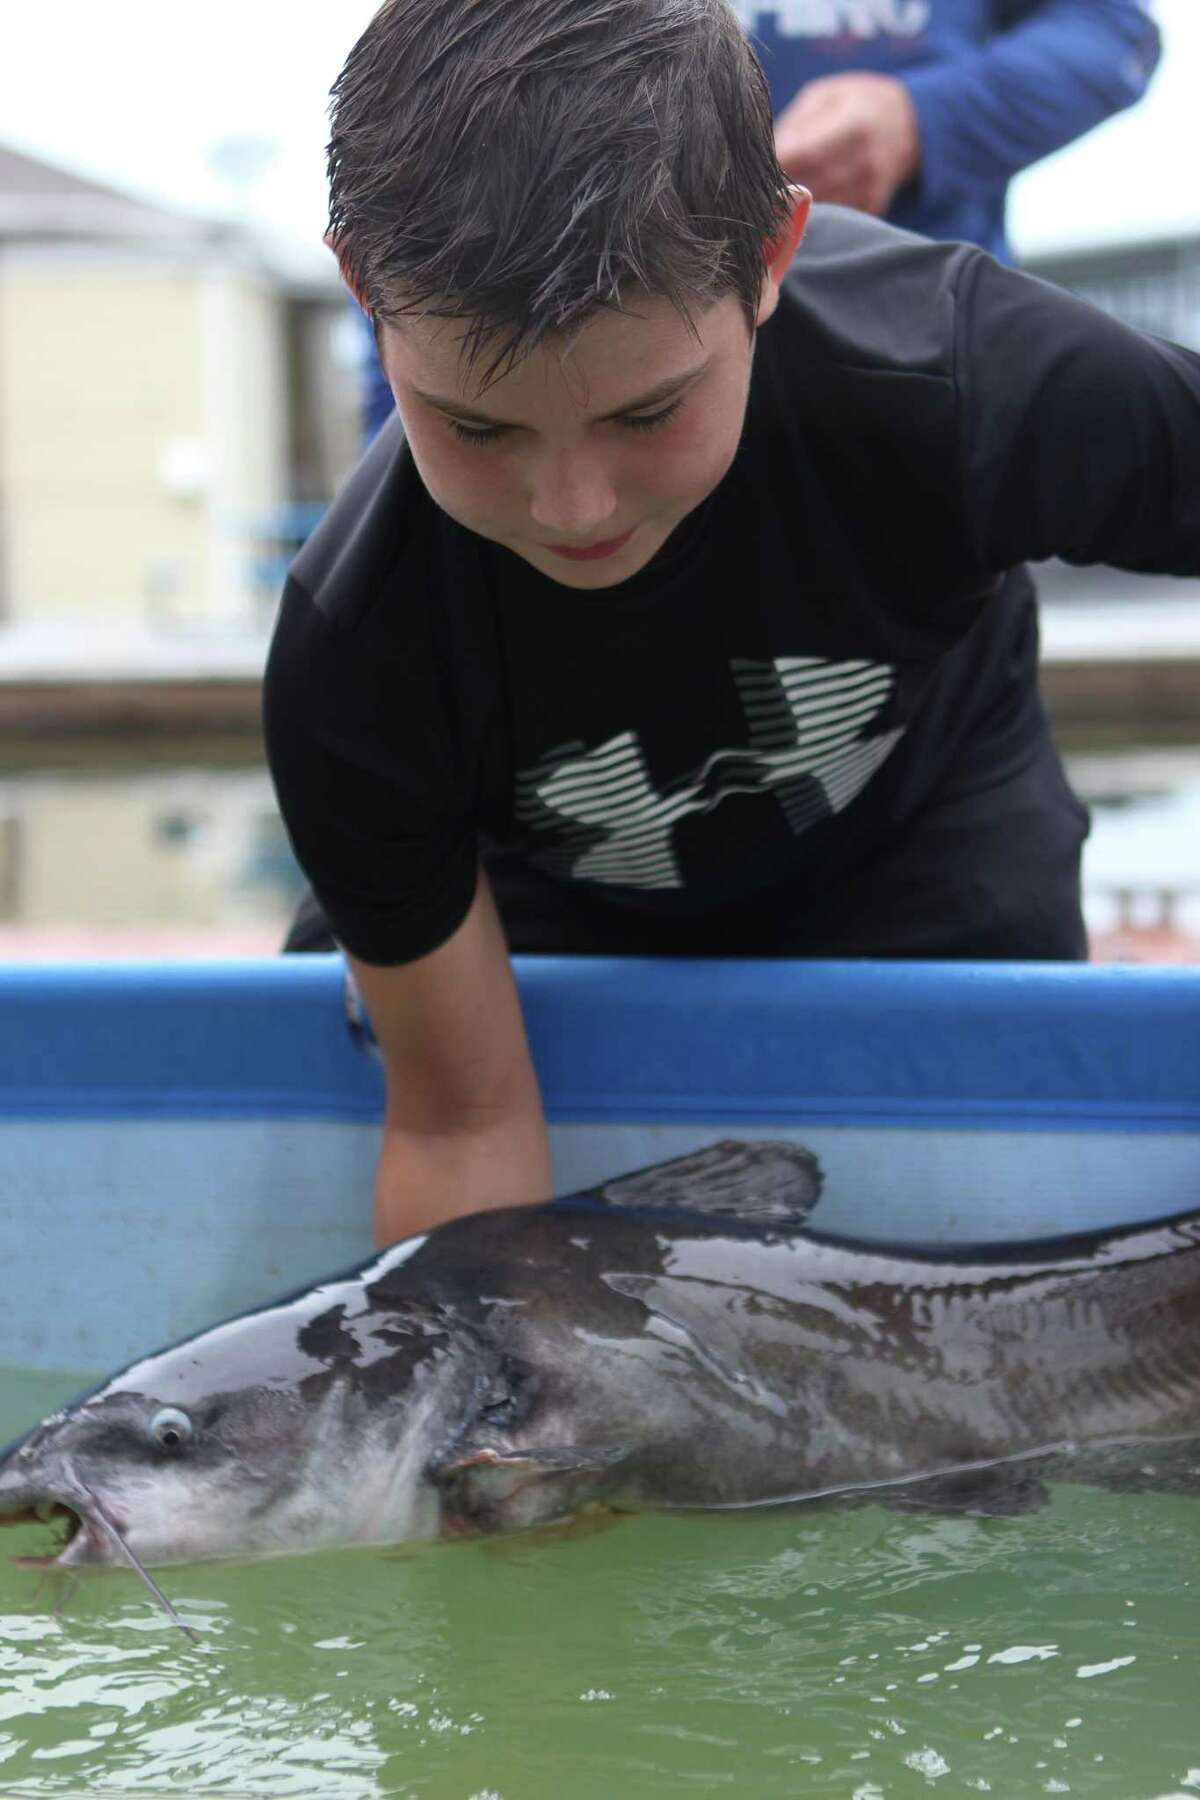 John Sigler, 11, pulls a Blue Catfish out of a pool to prepare it for tagging during Kids Fish Fest Saturday, Sept. 22, 2018 at Walden Marina. The event was organized to help teach children about the importance of conservations among other angler safety and fish identification topics.